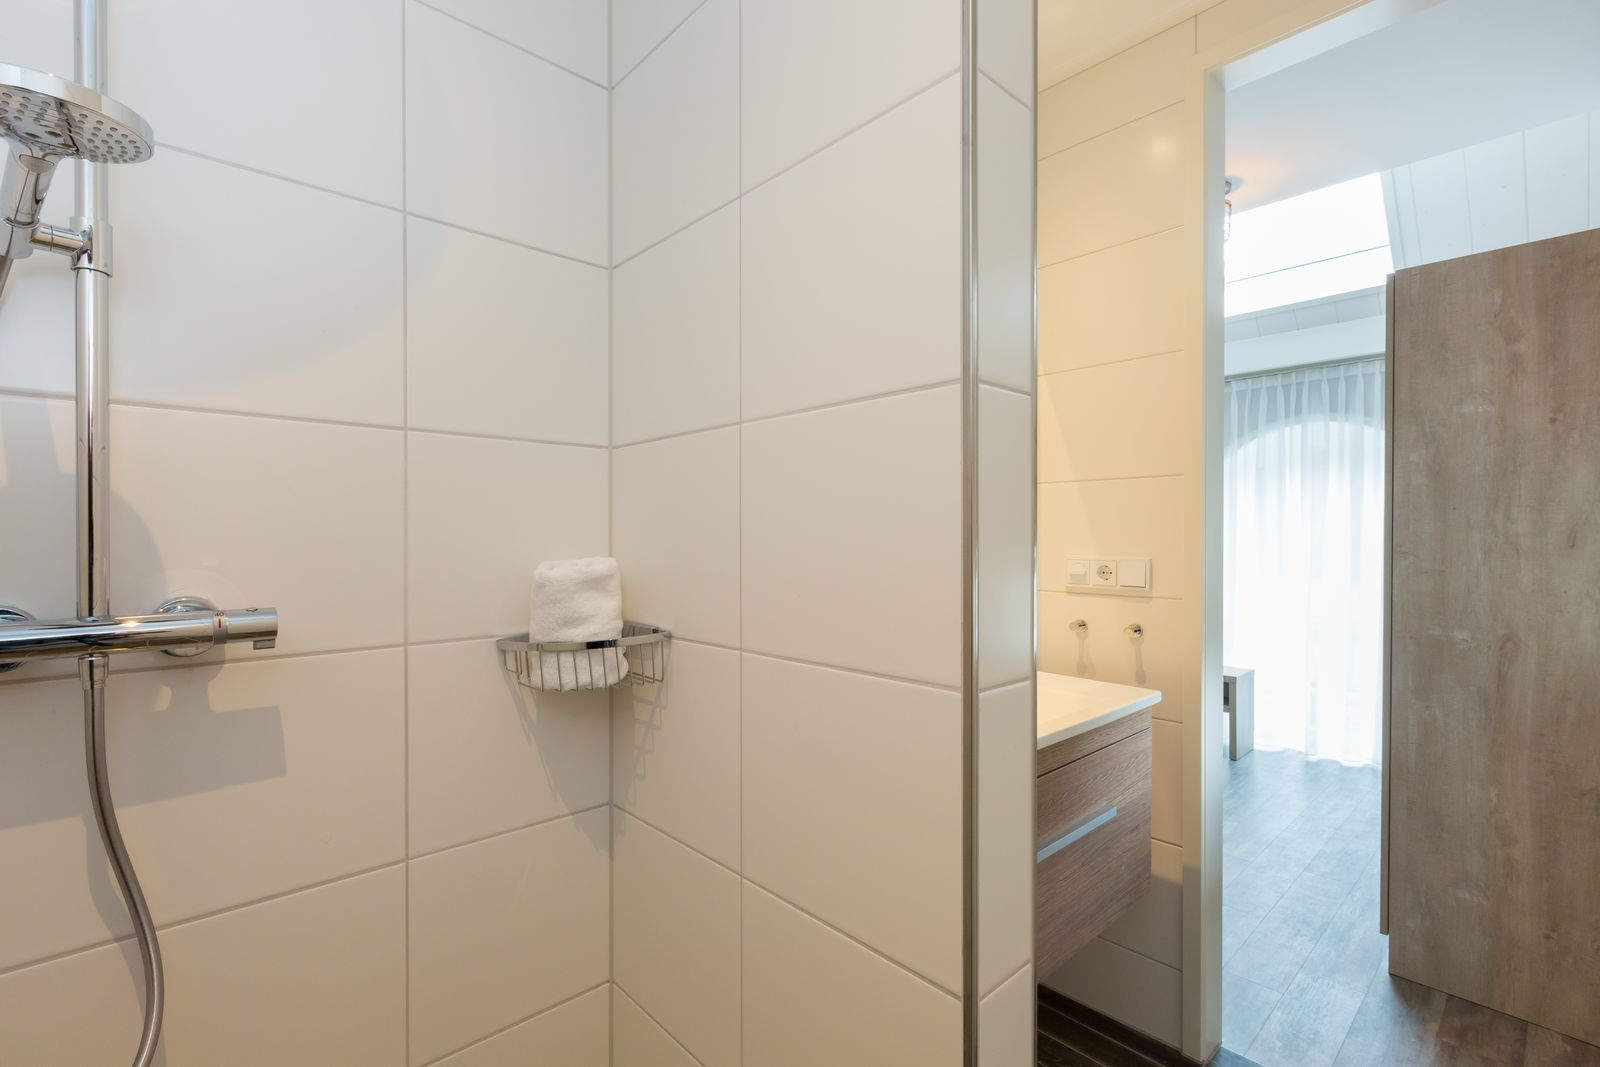 Oostkapelle - Apartment Comfort 4+ persons